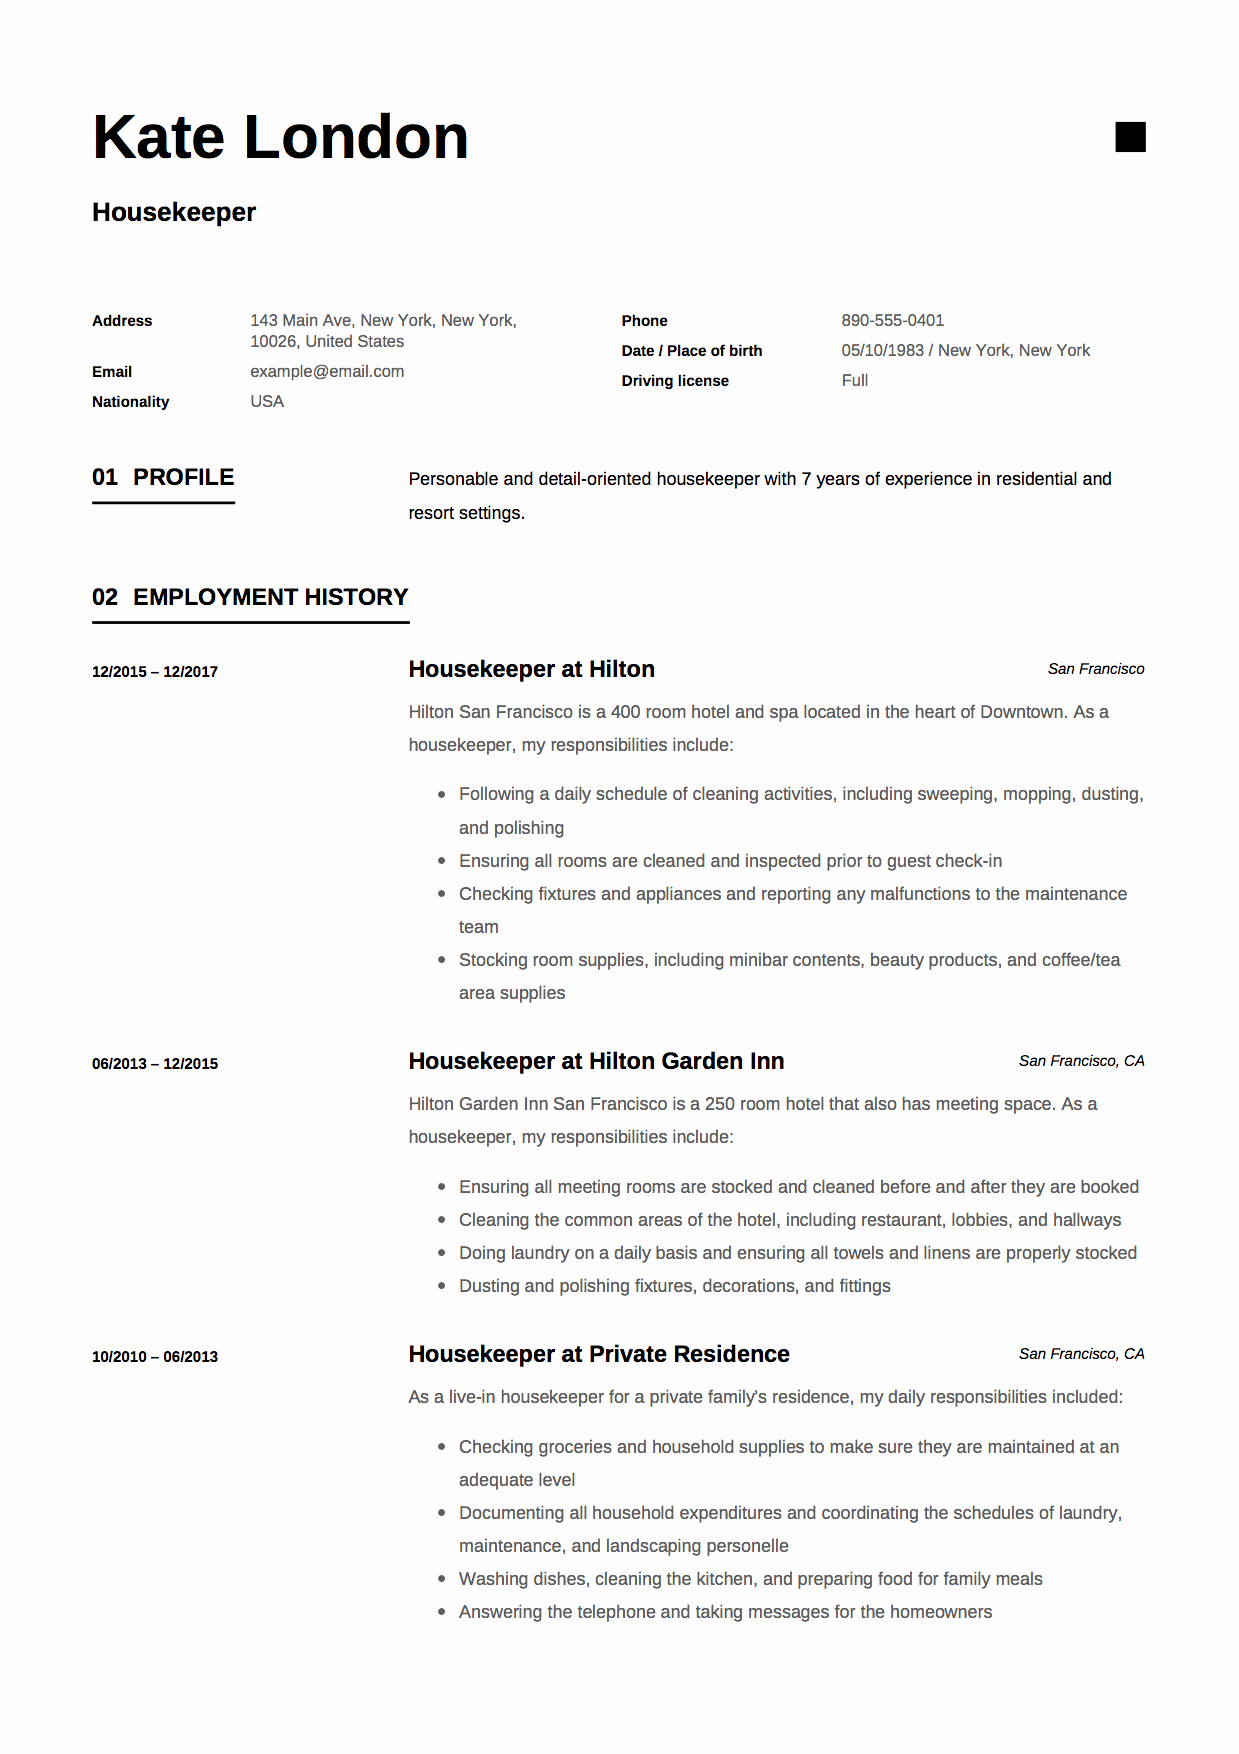 11 Housekeeper Resume Templates Free Download